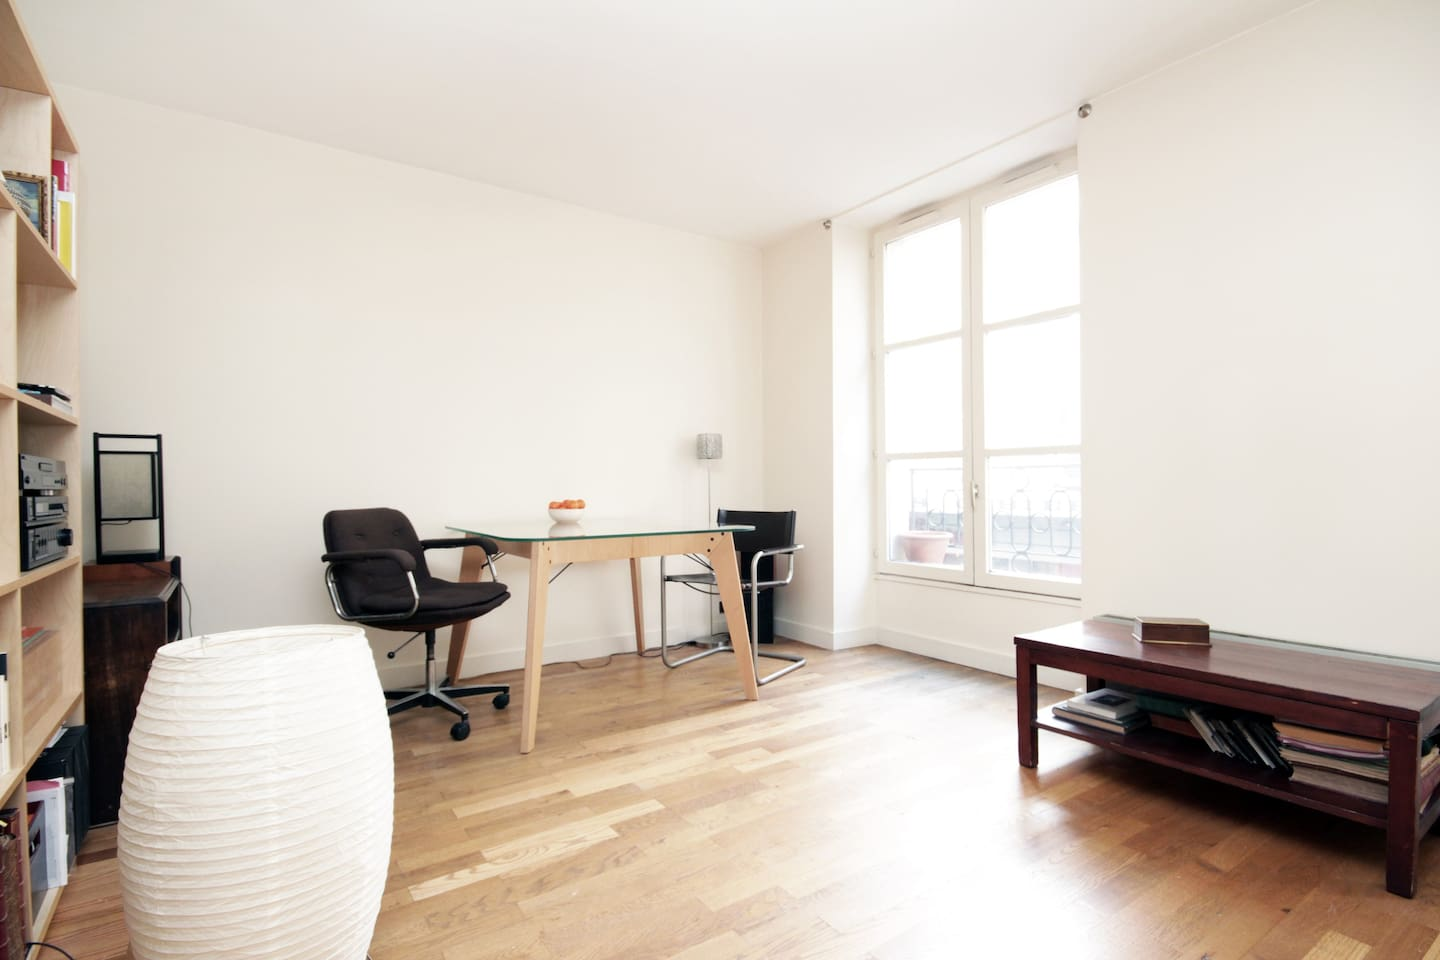 an apartment, quiet, bright and clean